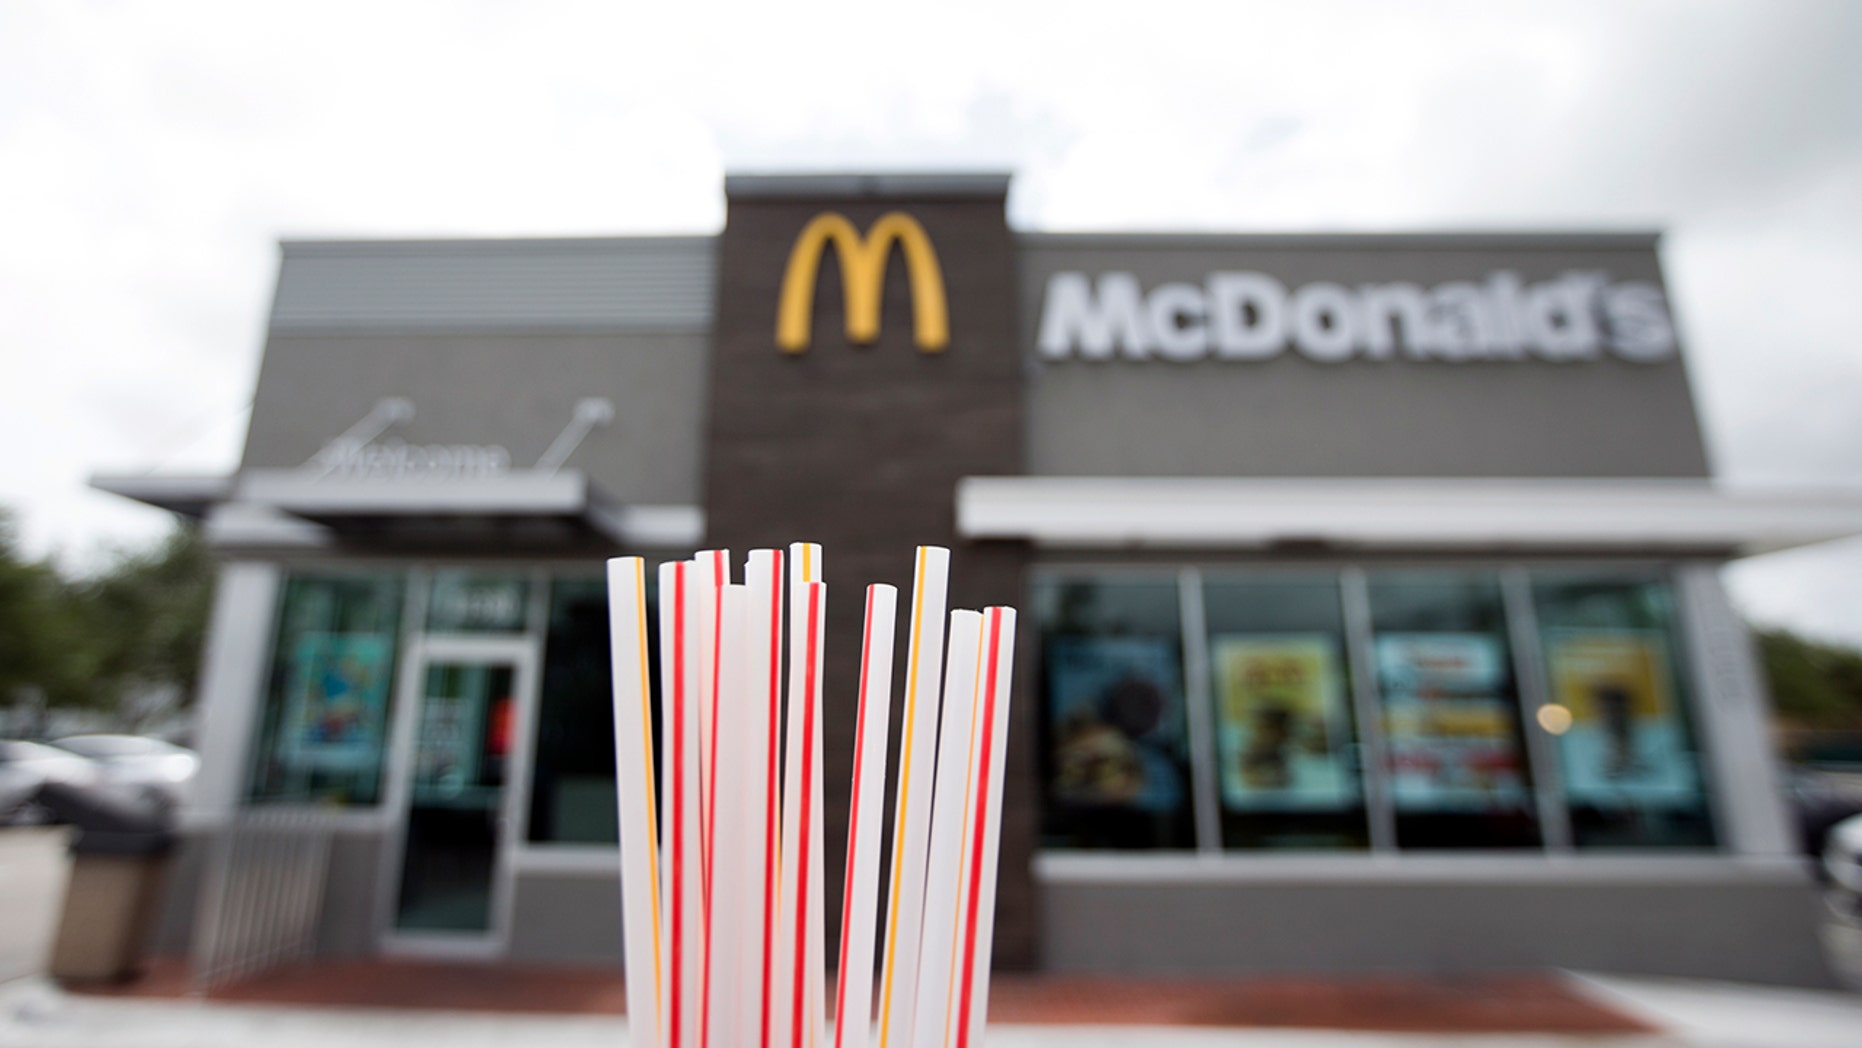 McDonald's announced it will begin testing plastic straw alternatives in the U.S. and transitioning to paper straws in the U.K.